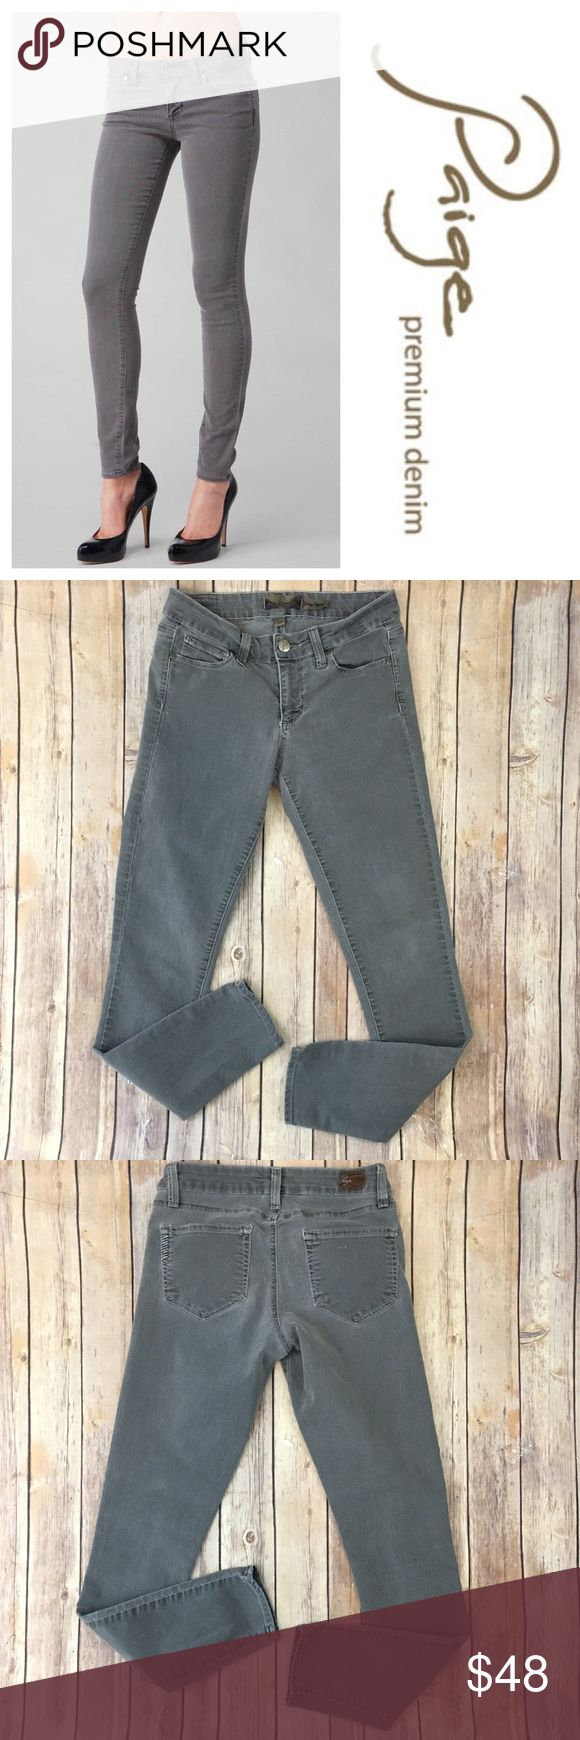 """Paige Premium Denim Verdugo Jegging Skinny 27 Gray Tag Size - 27 Waist Measured Across - 14"""" Inseam - 29"""" Rise - 7.5"""" Great used condition! Always open to reasonable offers. Paige Jeans Jeans Skinny"""